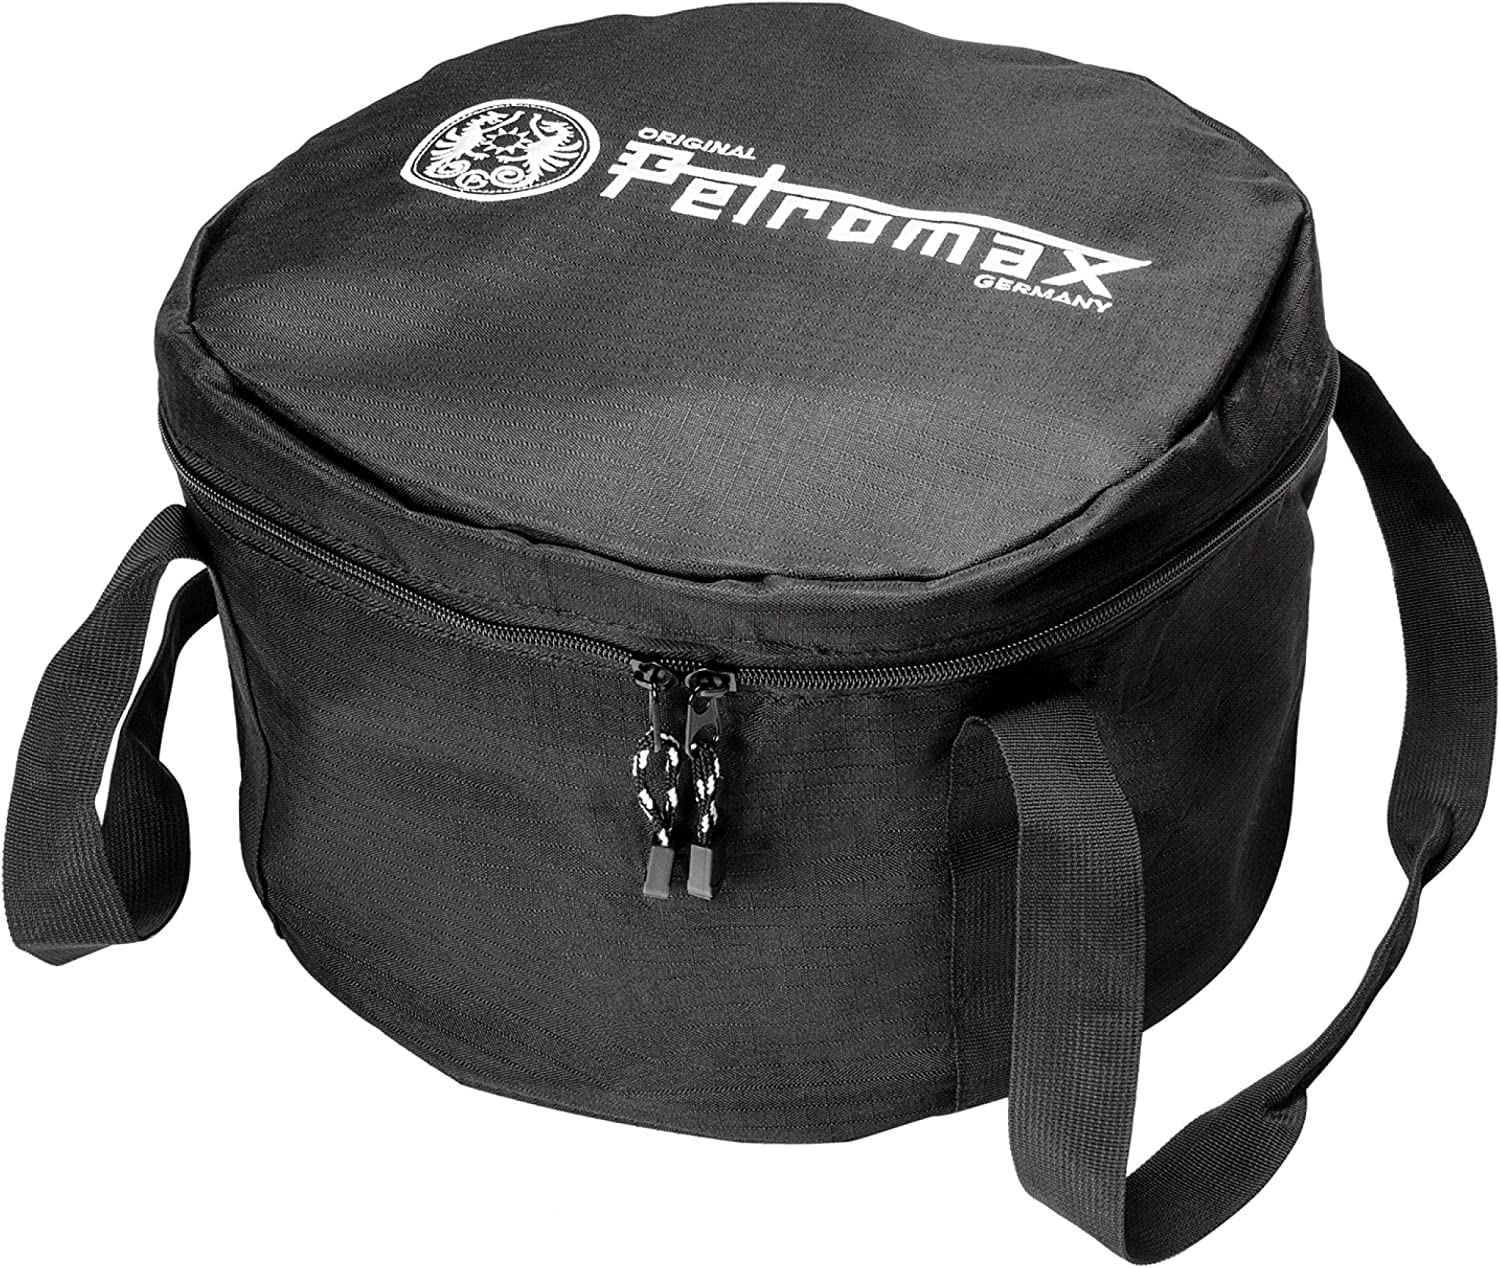 Petromax Transport Bag for 3.7 Qt Dutch Ovens